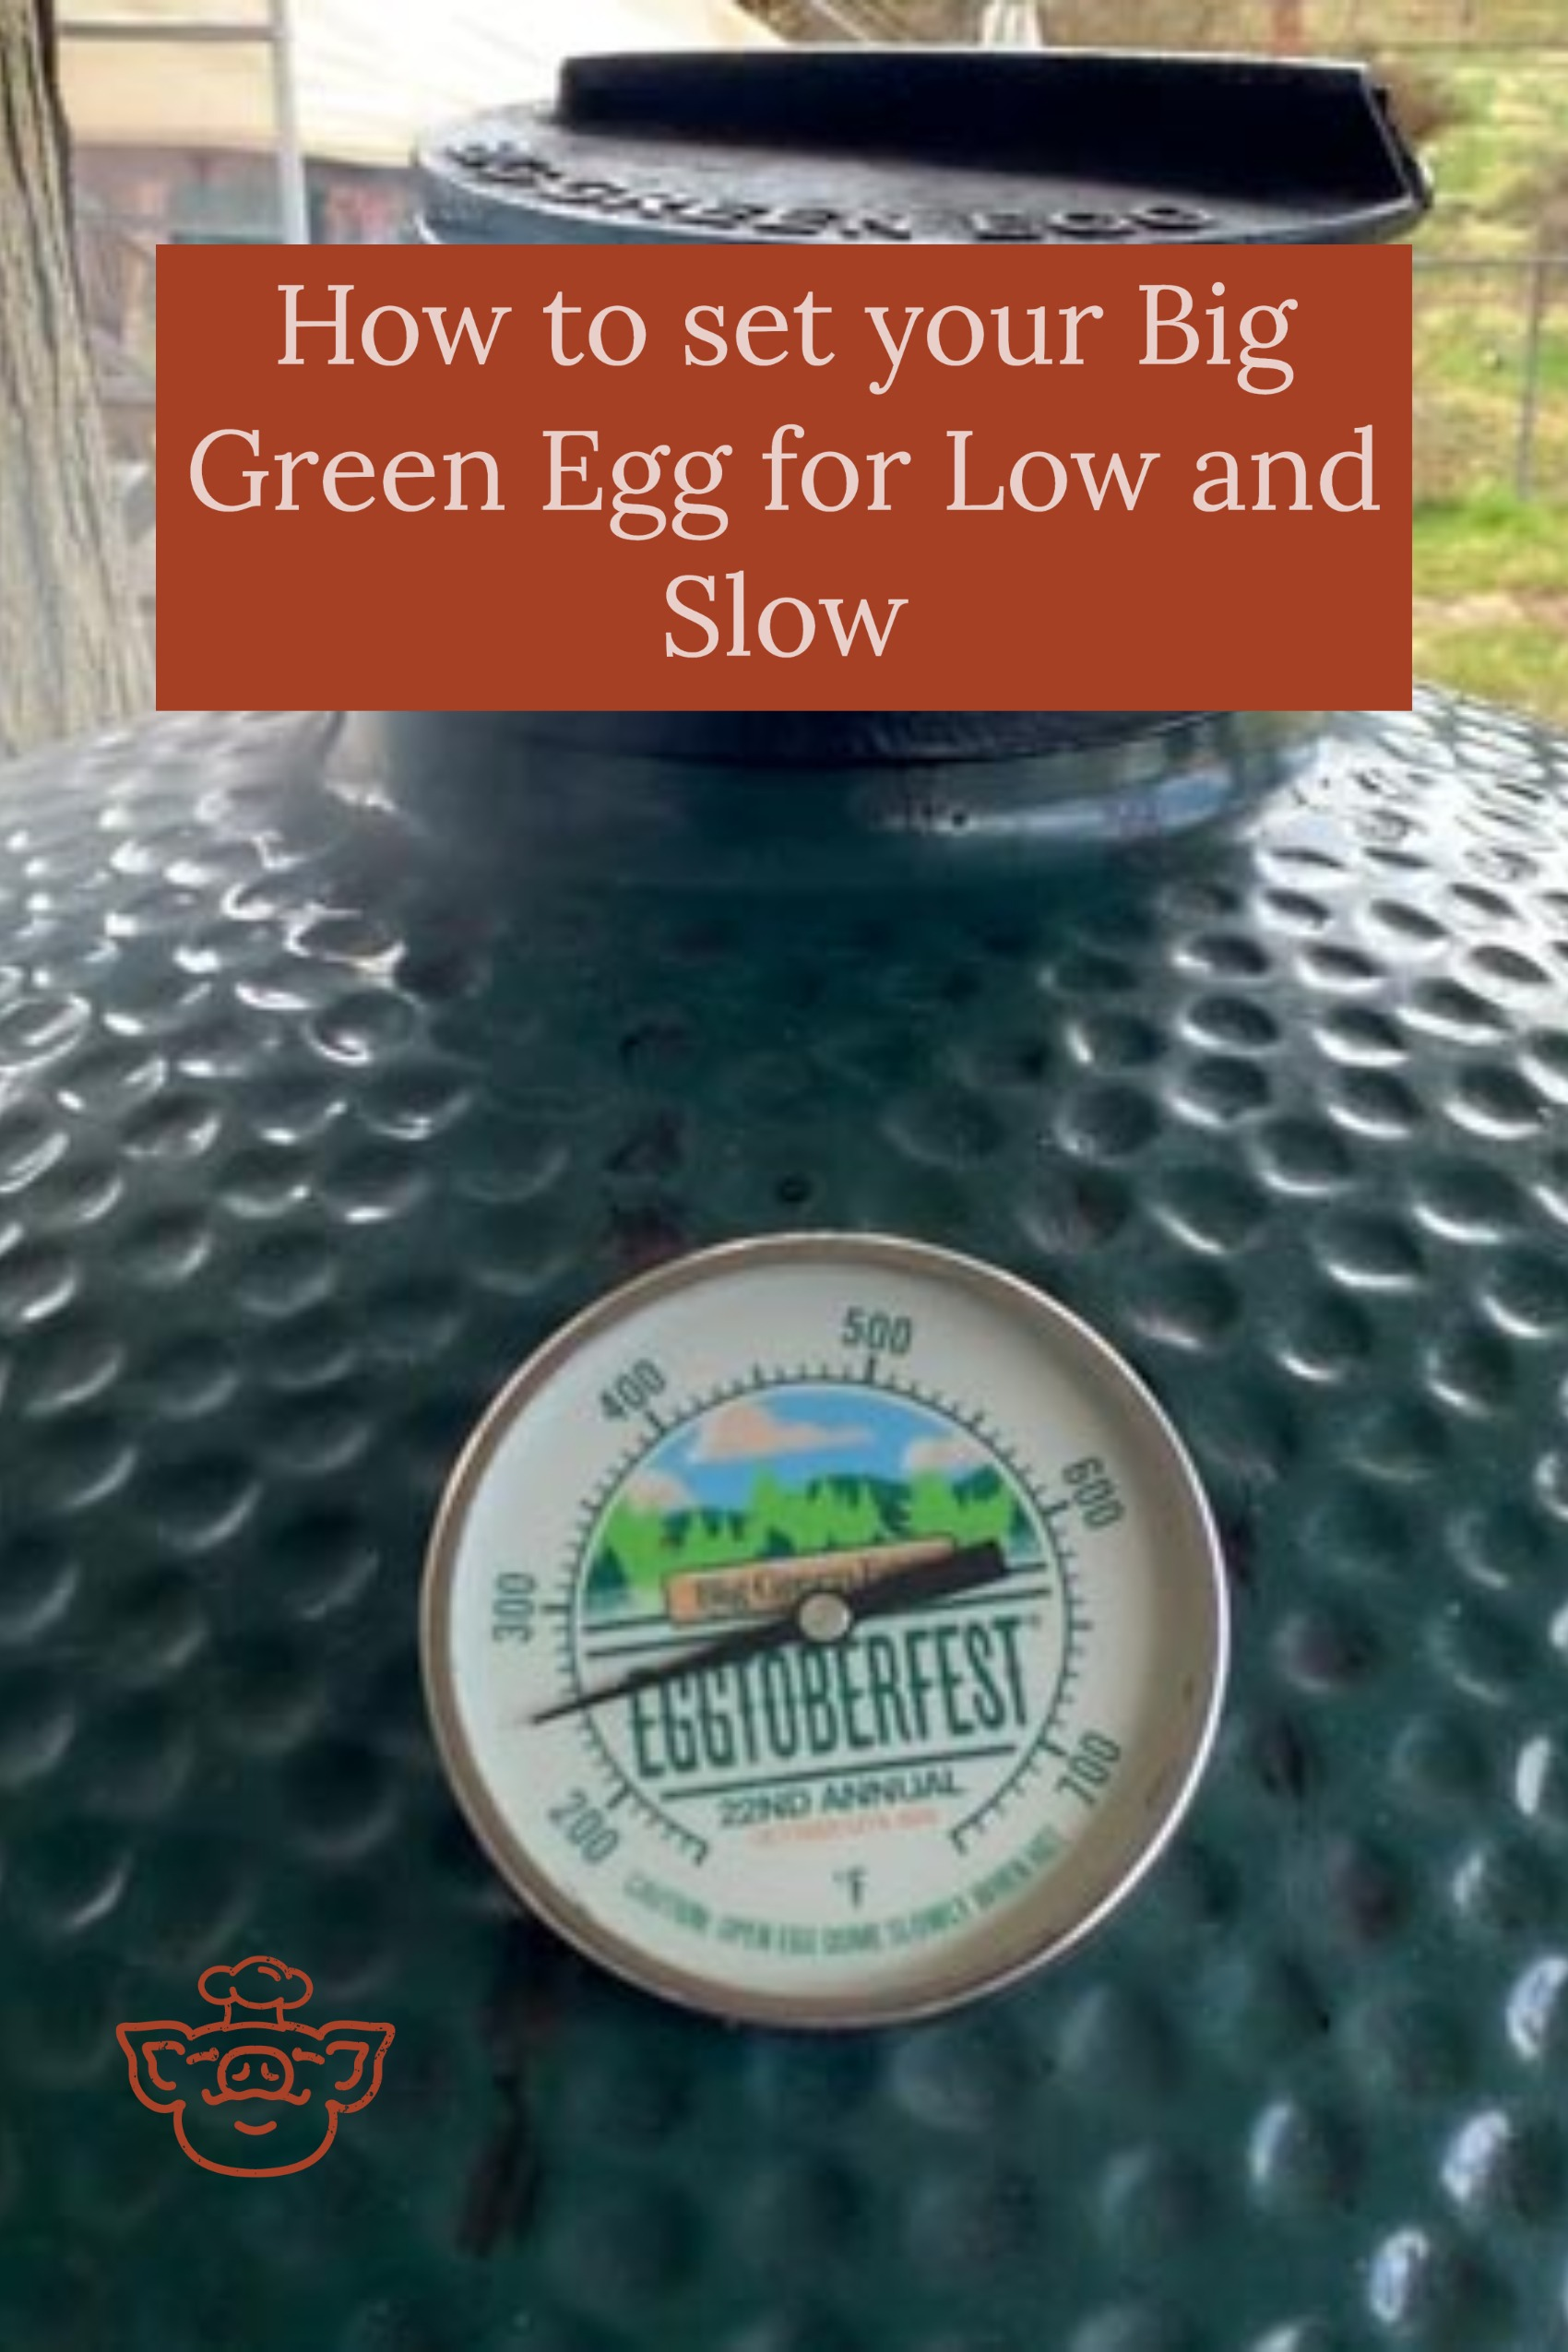 How to set your Big Green Egg for Low and Slow